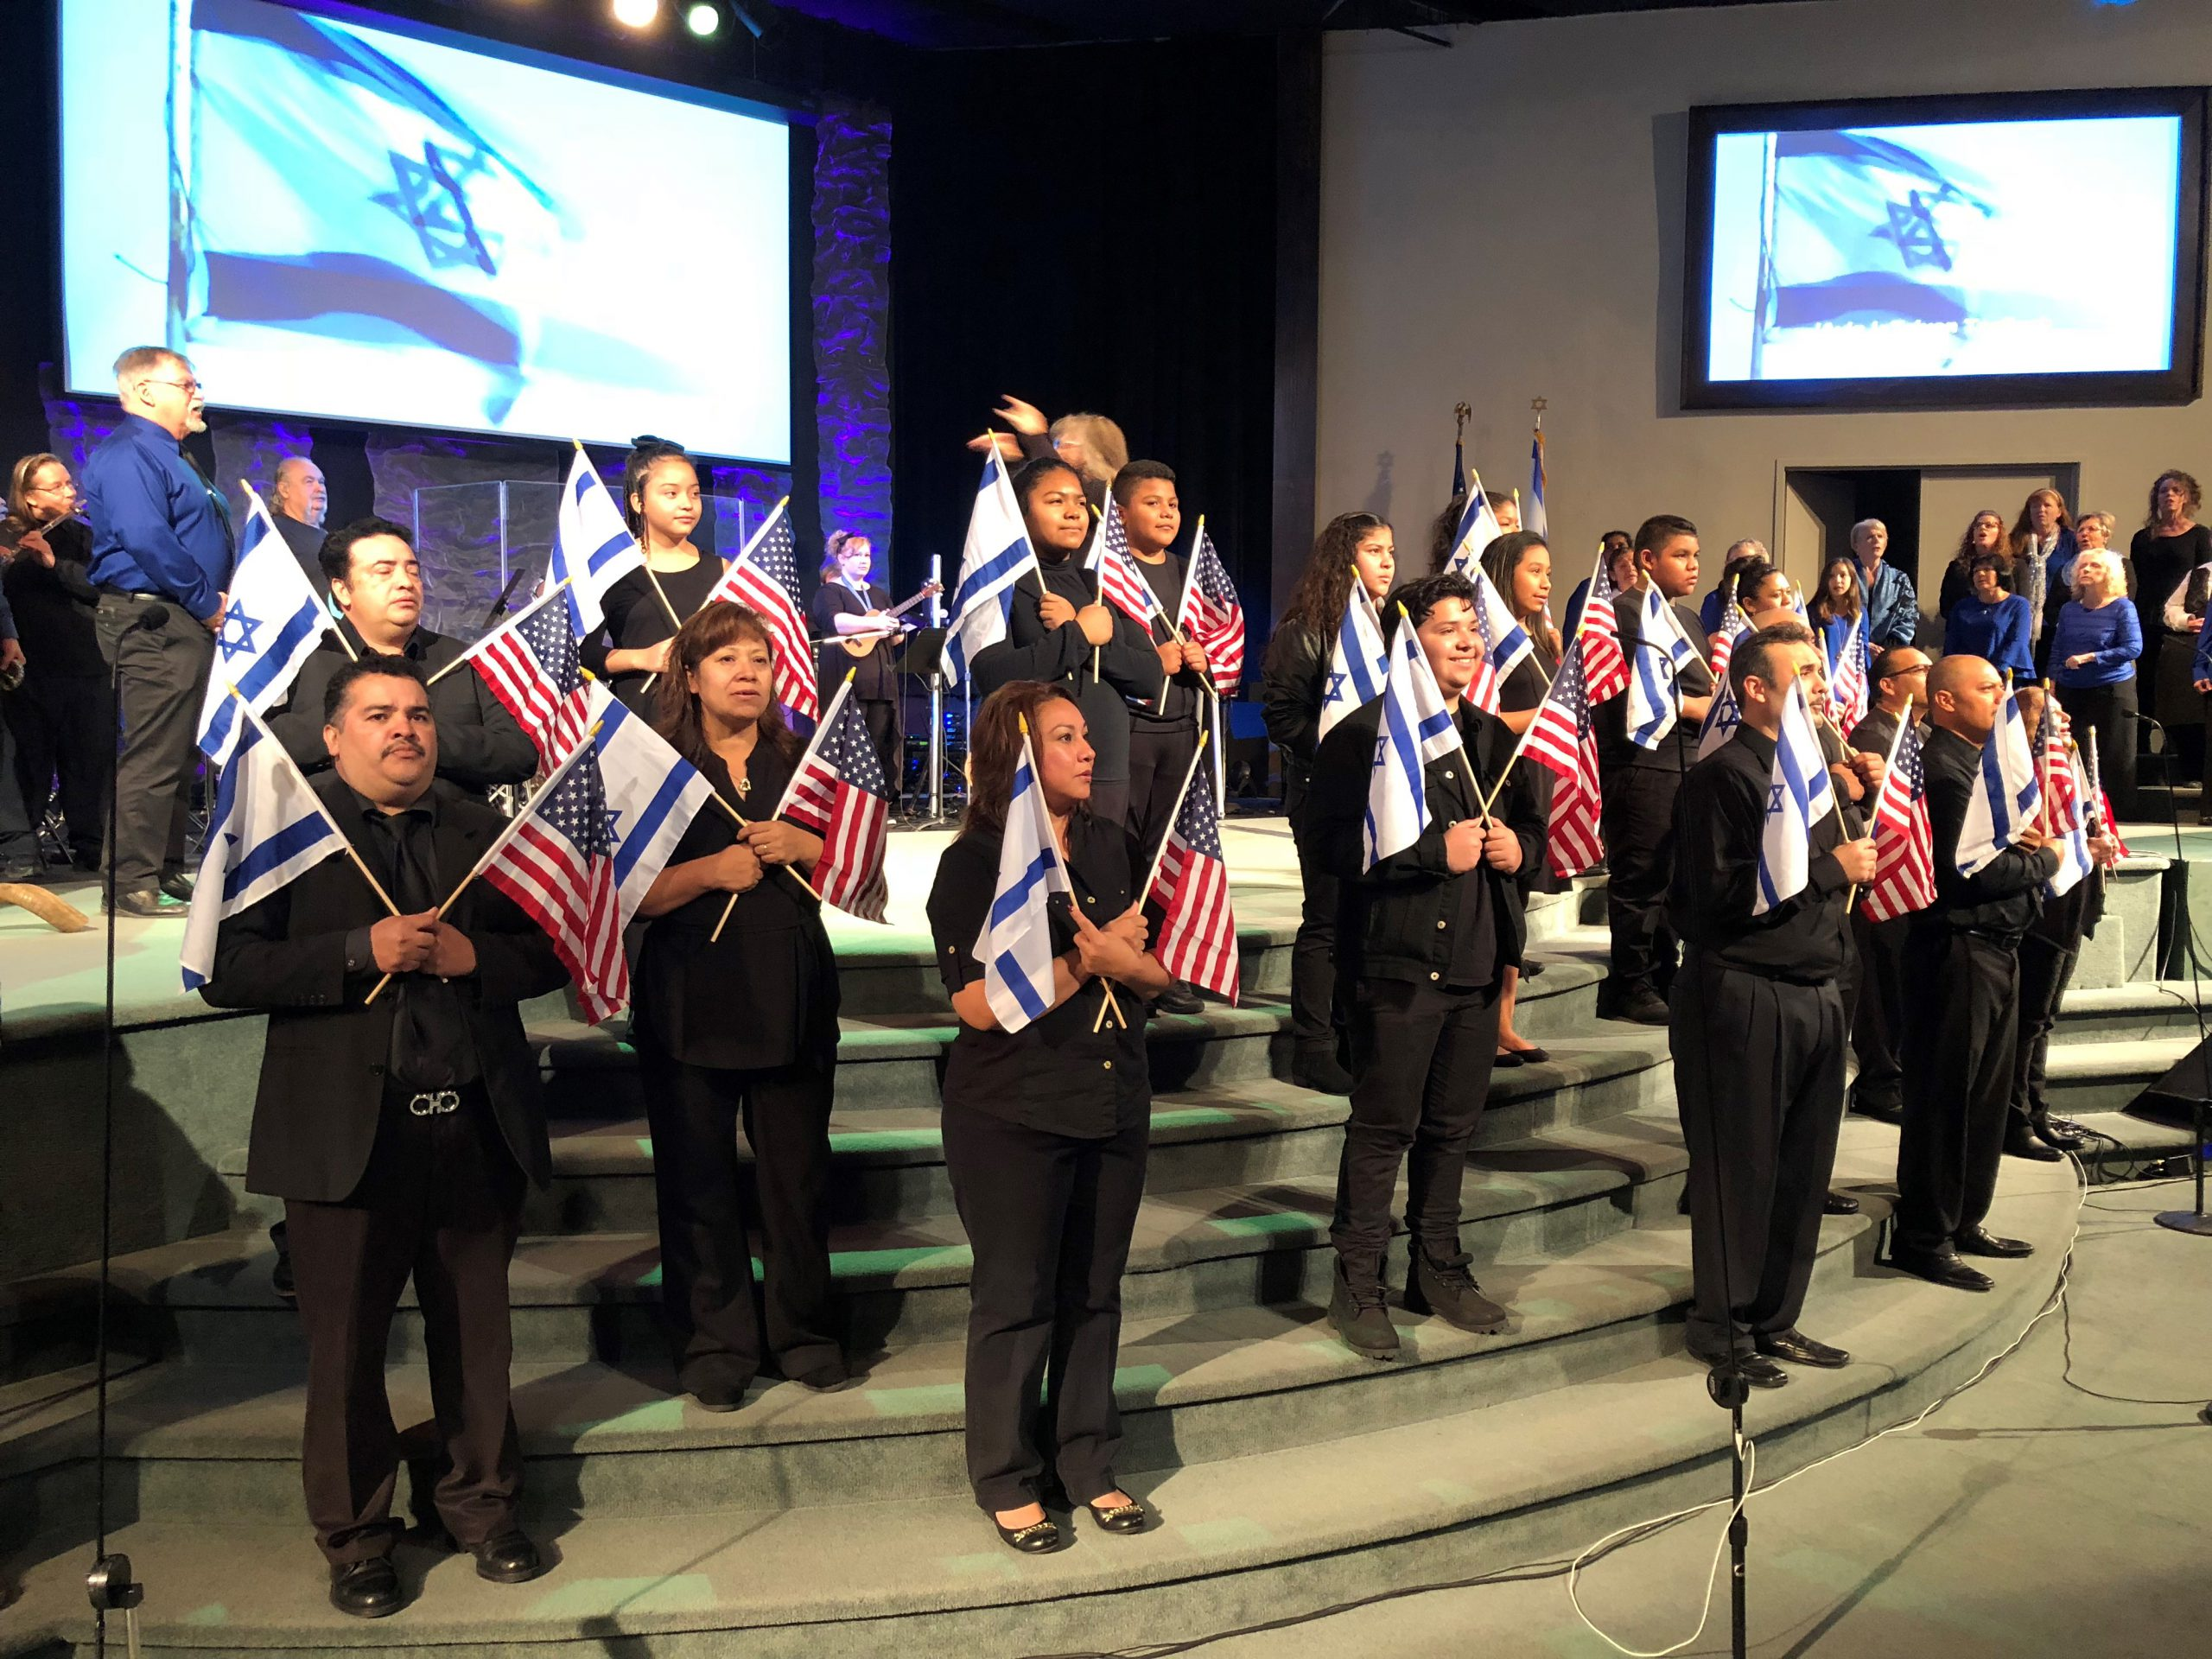 Oct 18th Moline, IL Night to Honor Israel